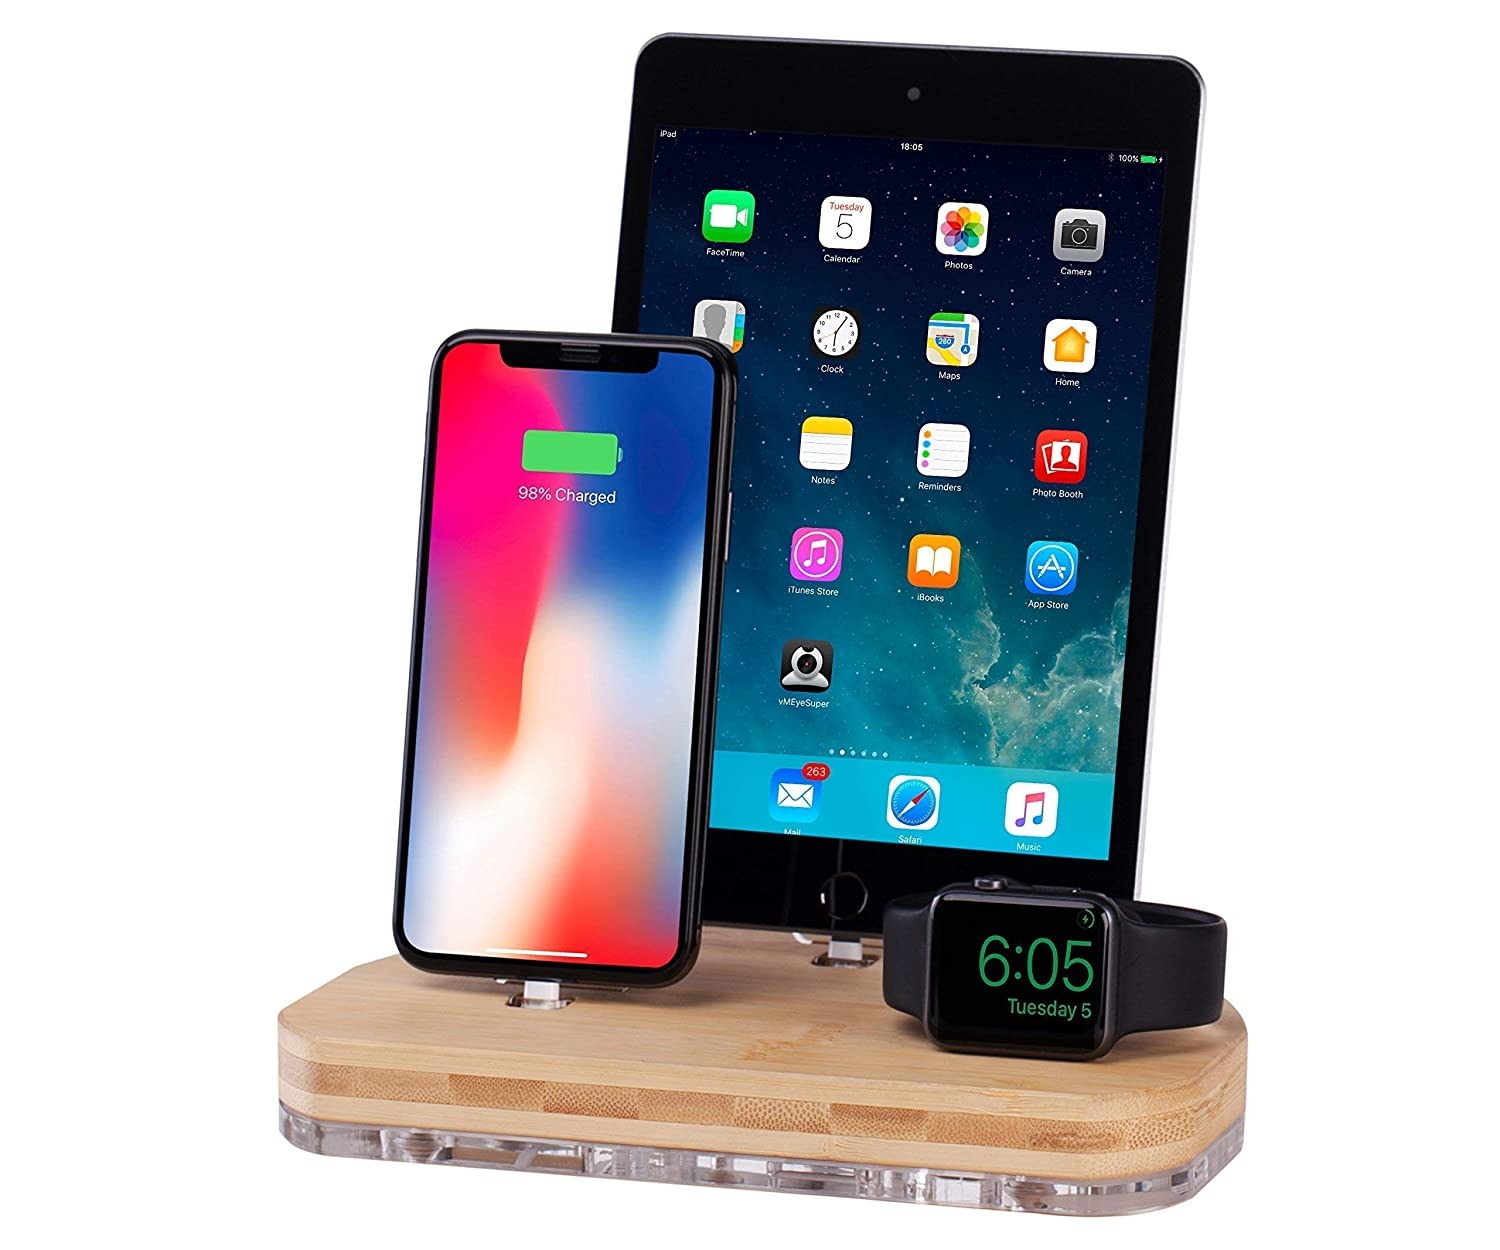 Multi Devices I iPhone Docking Station I Charging Stand I Tablet Holder Compatible with iPhone XR,Xs,X,8,7,6.Apple Watch Series 3,4,5 iPad Mini AirPro10.5 & Airpods Pre-Installed USB Cables